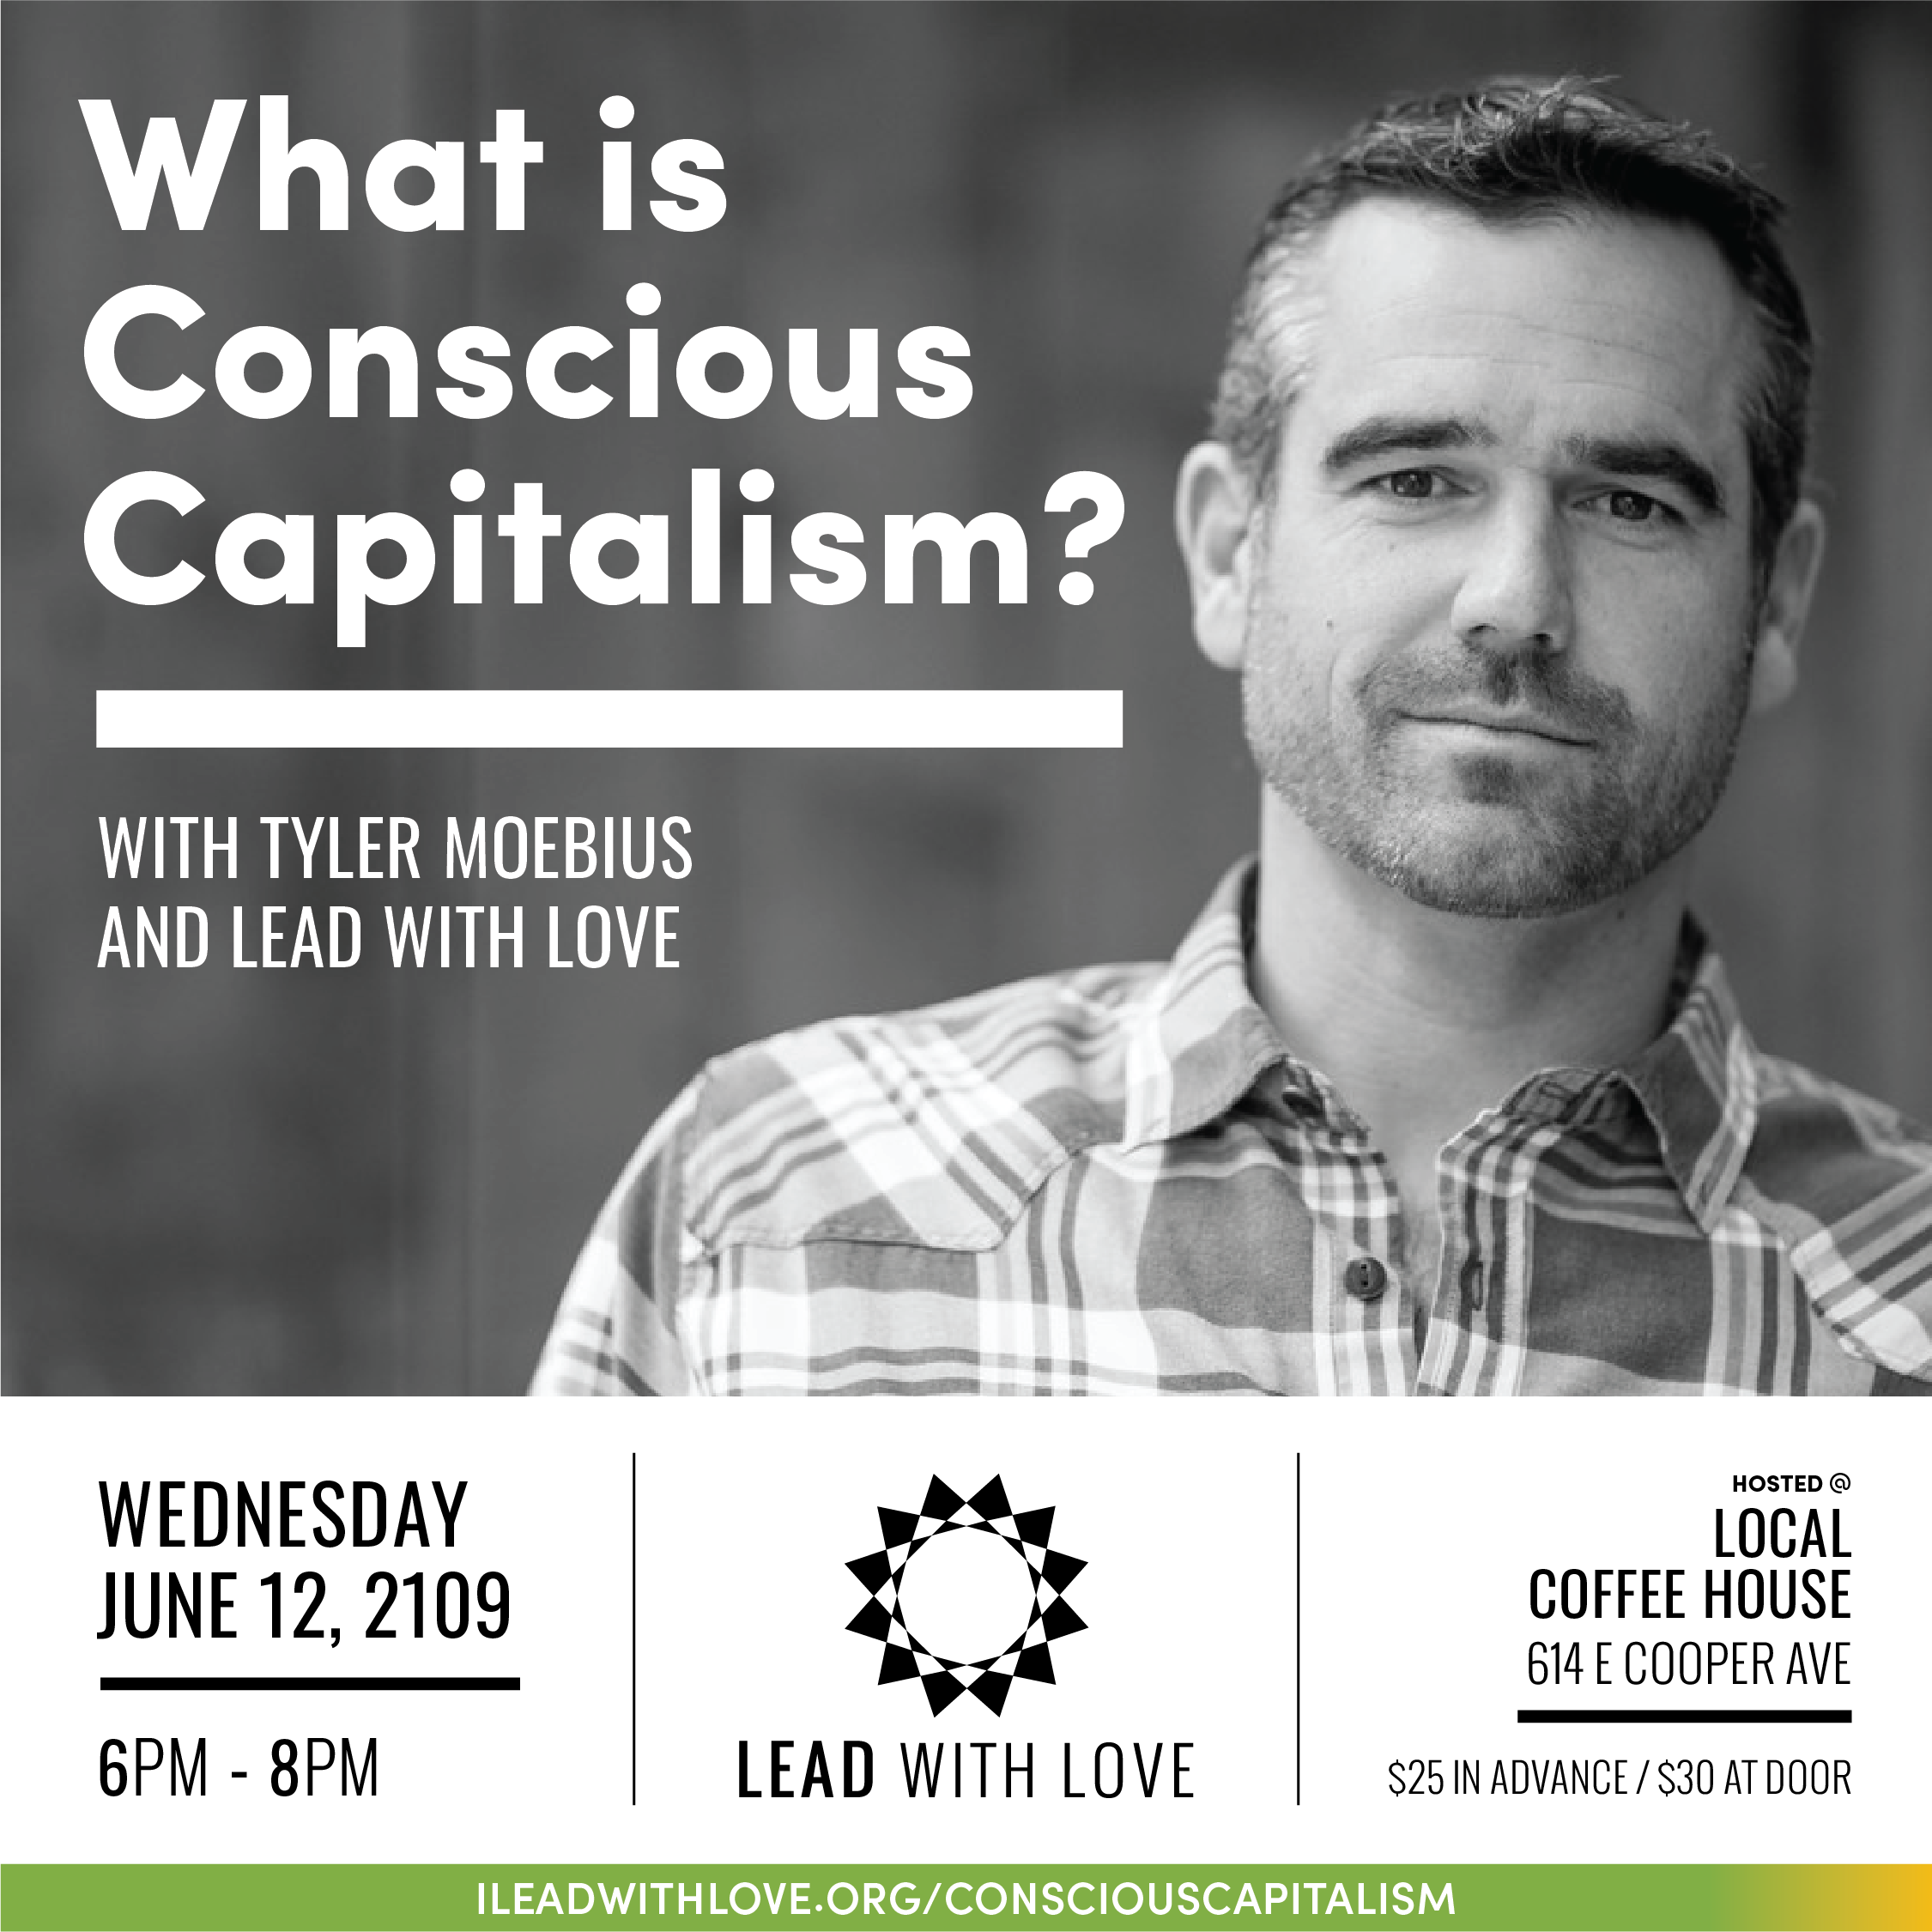 Wednesday, June 12th - Join us for an info night on Conscious Capitalism with Tyler Moebius.